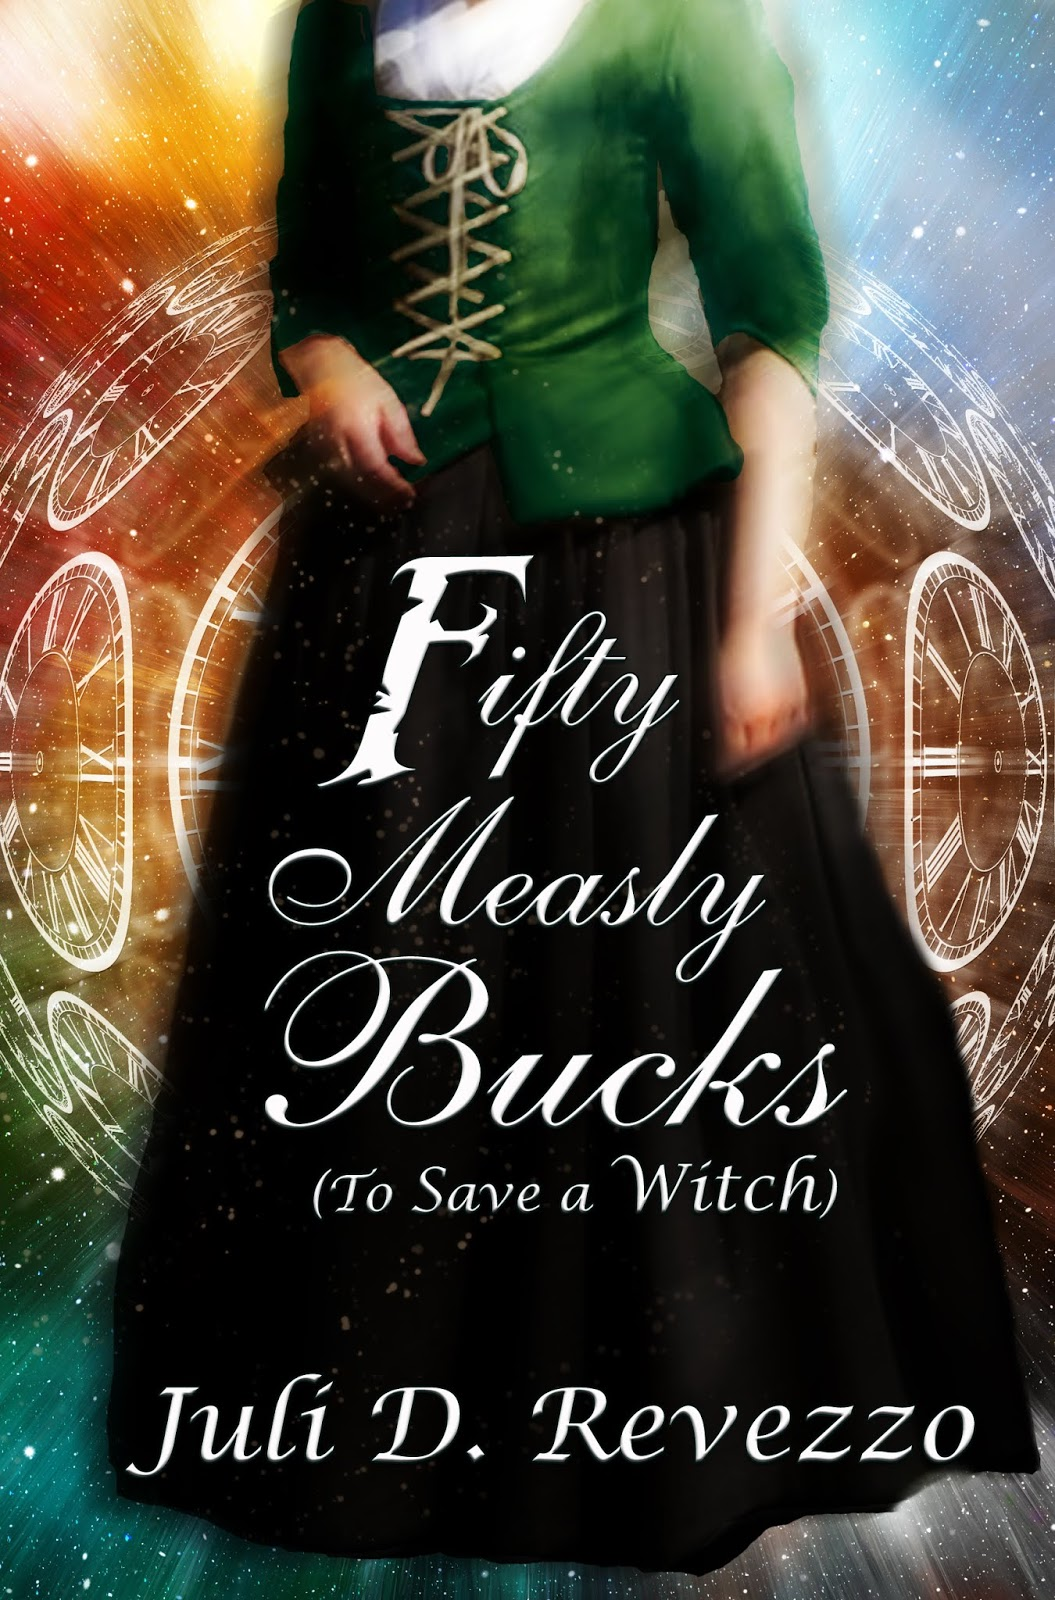 Fifty Measly Bucks by Juli D. Revezzo, Kindle, ebook, paperback, books, new release books, new release books 2018, new release ebooks, time travel, science fiction, kindle unlimited. Available at Amazon.